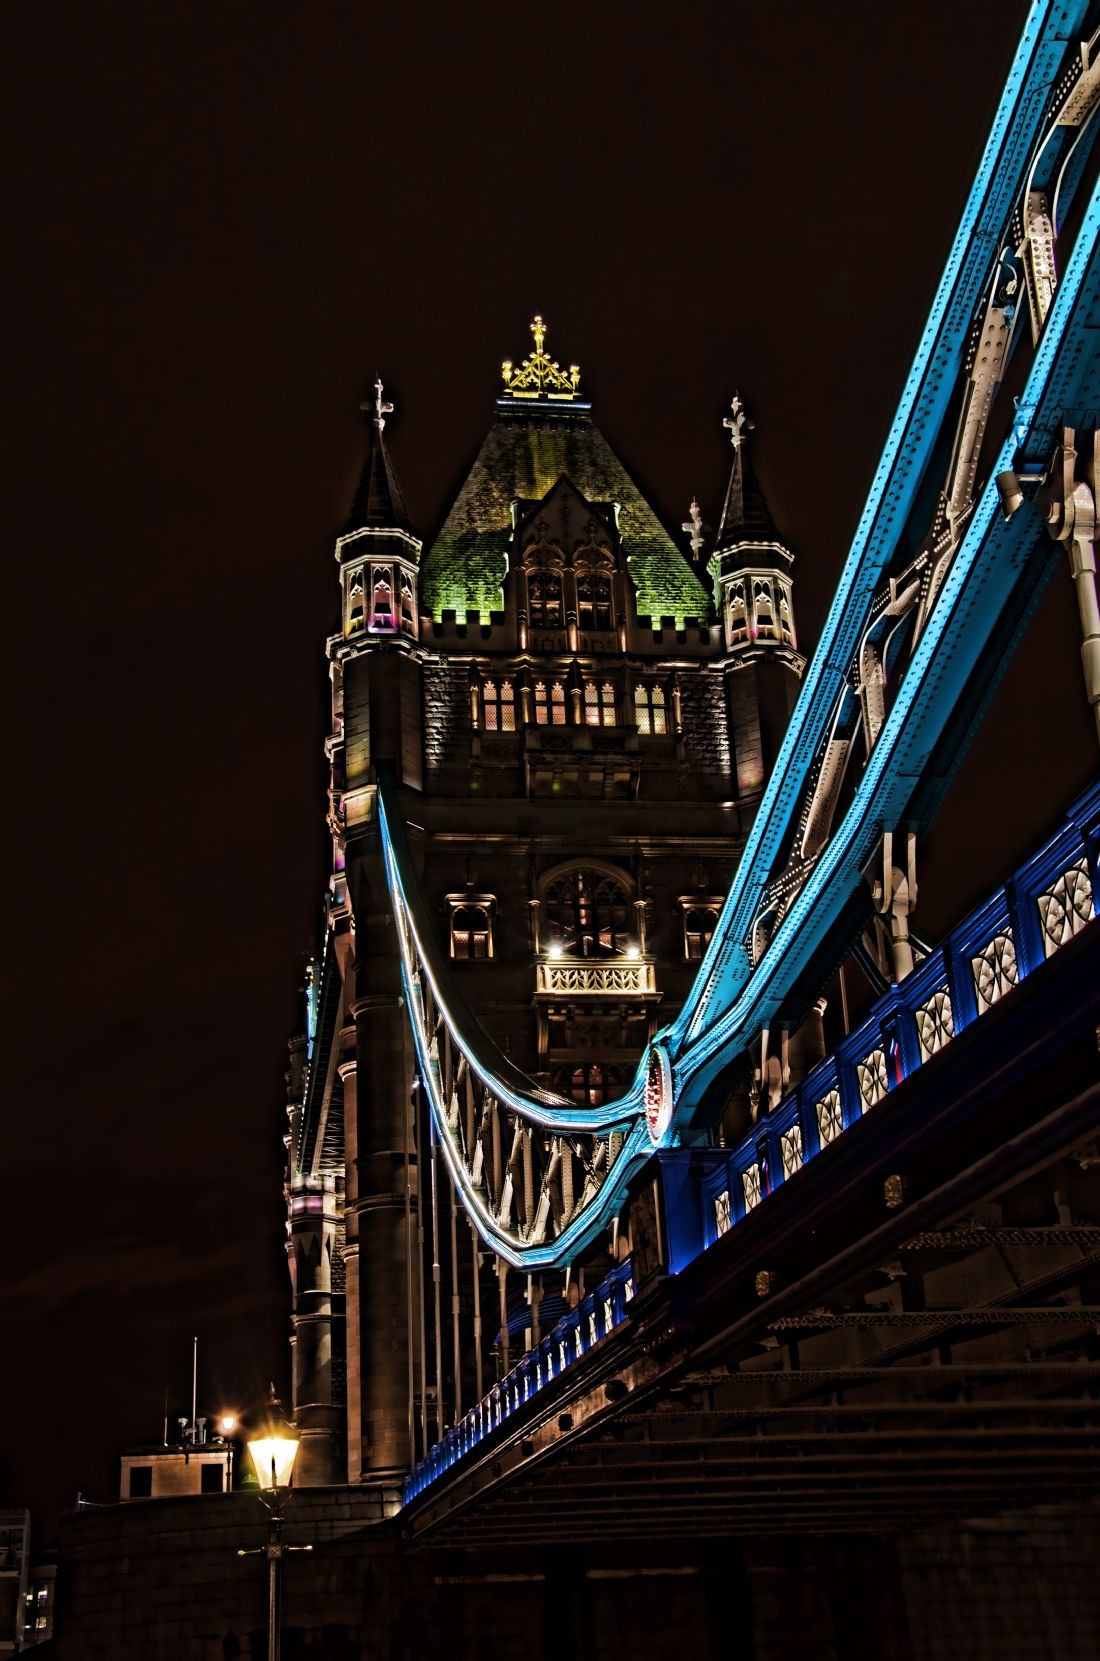 Steve Stamford | Under Tower Bridge